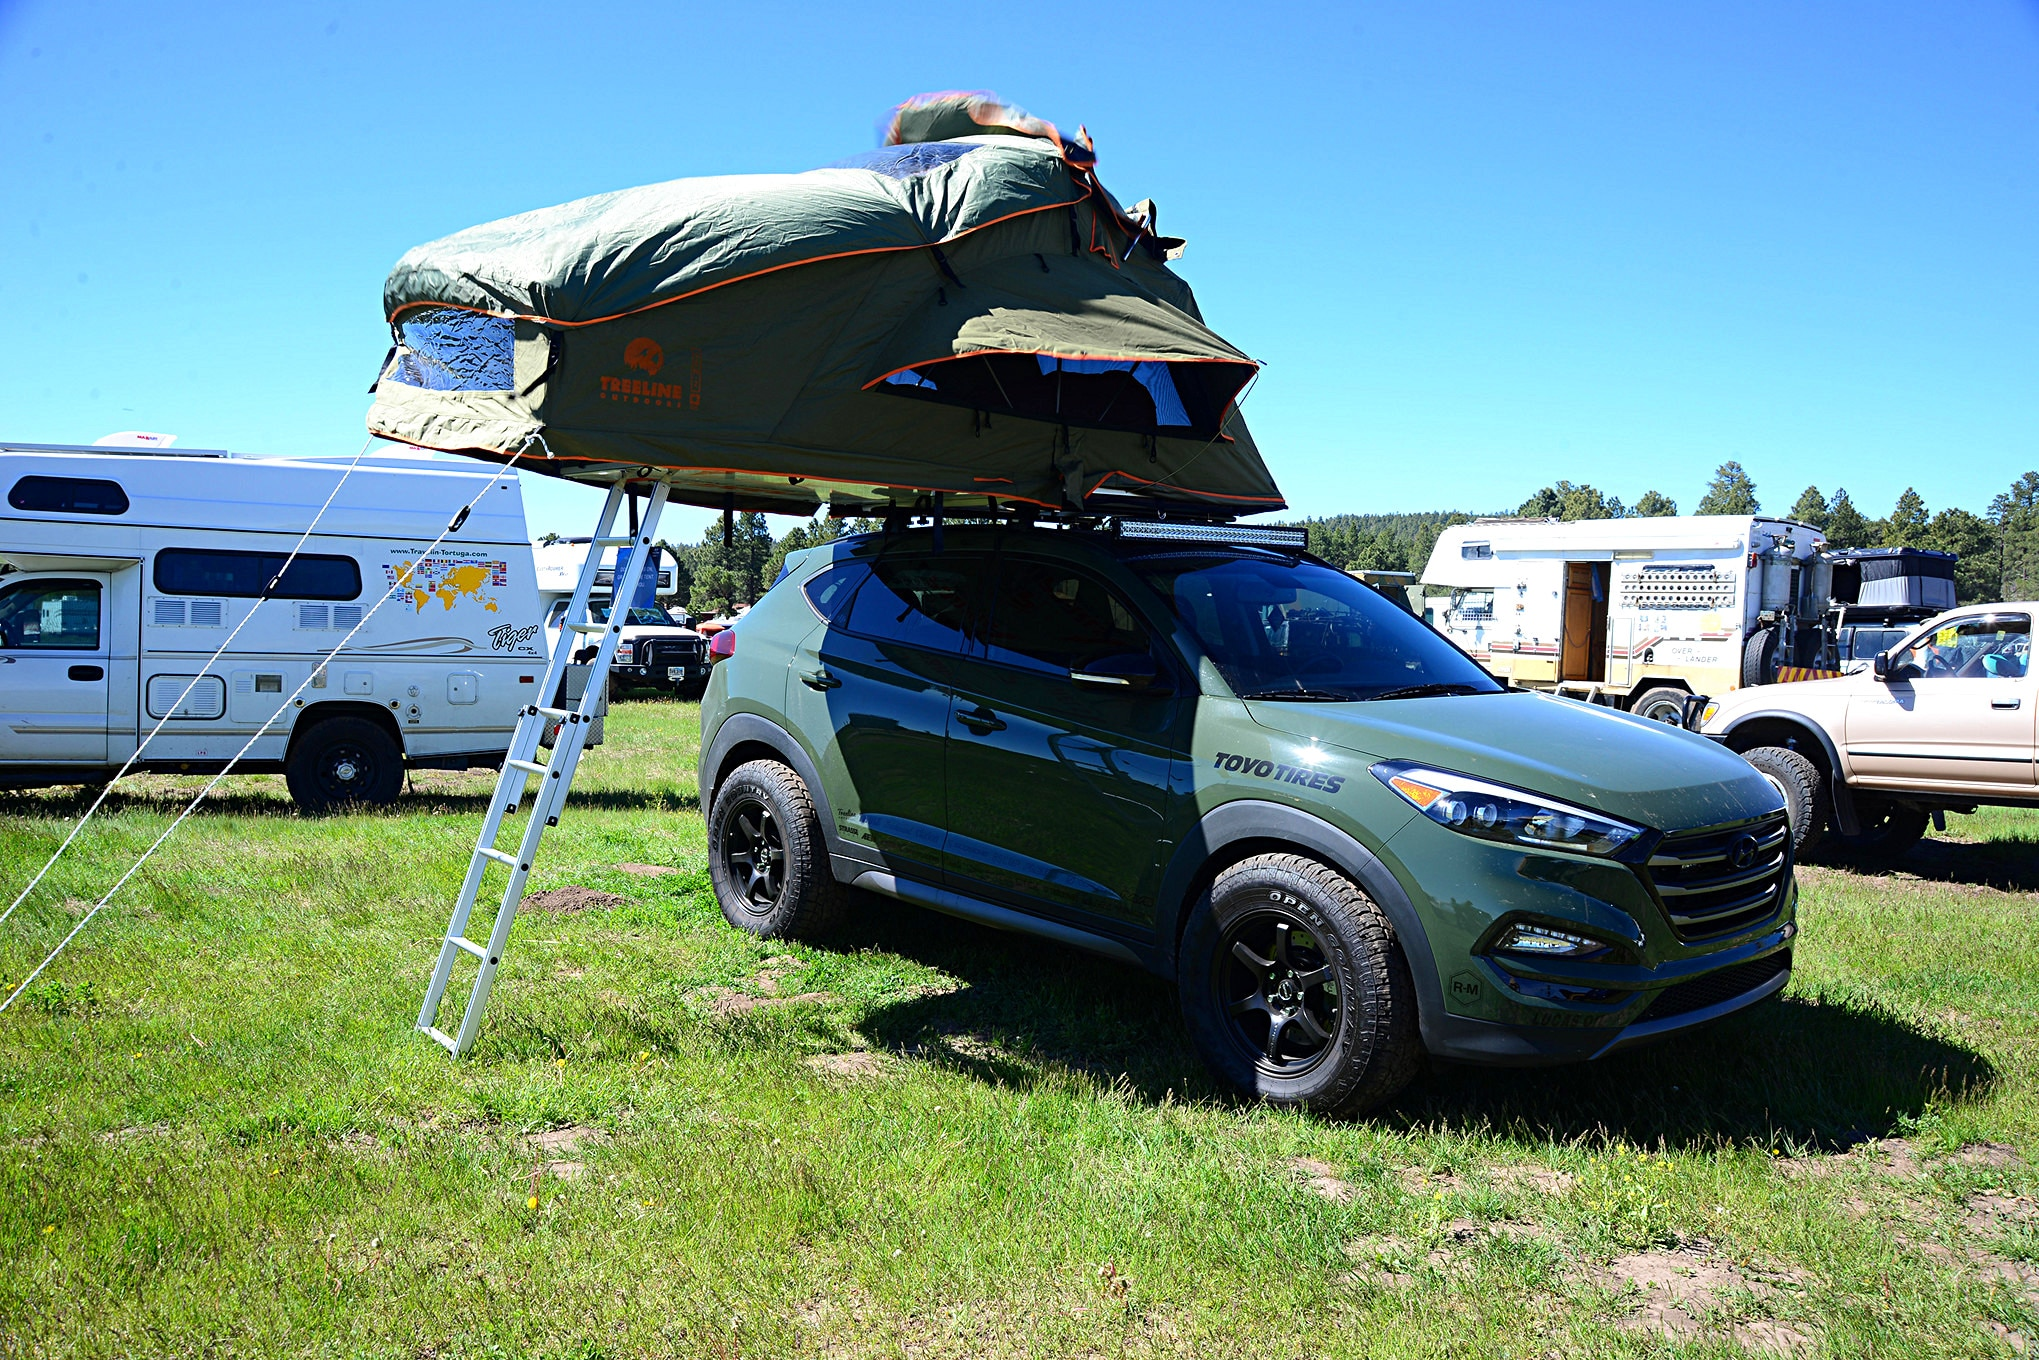 004 2016 Overland Expo 4x4 Vehicles Camping Flagstaff Mormon Lake Arizona Hyundai Santa Fe Sport Photo 107157388